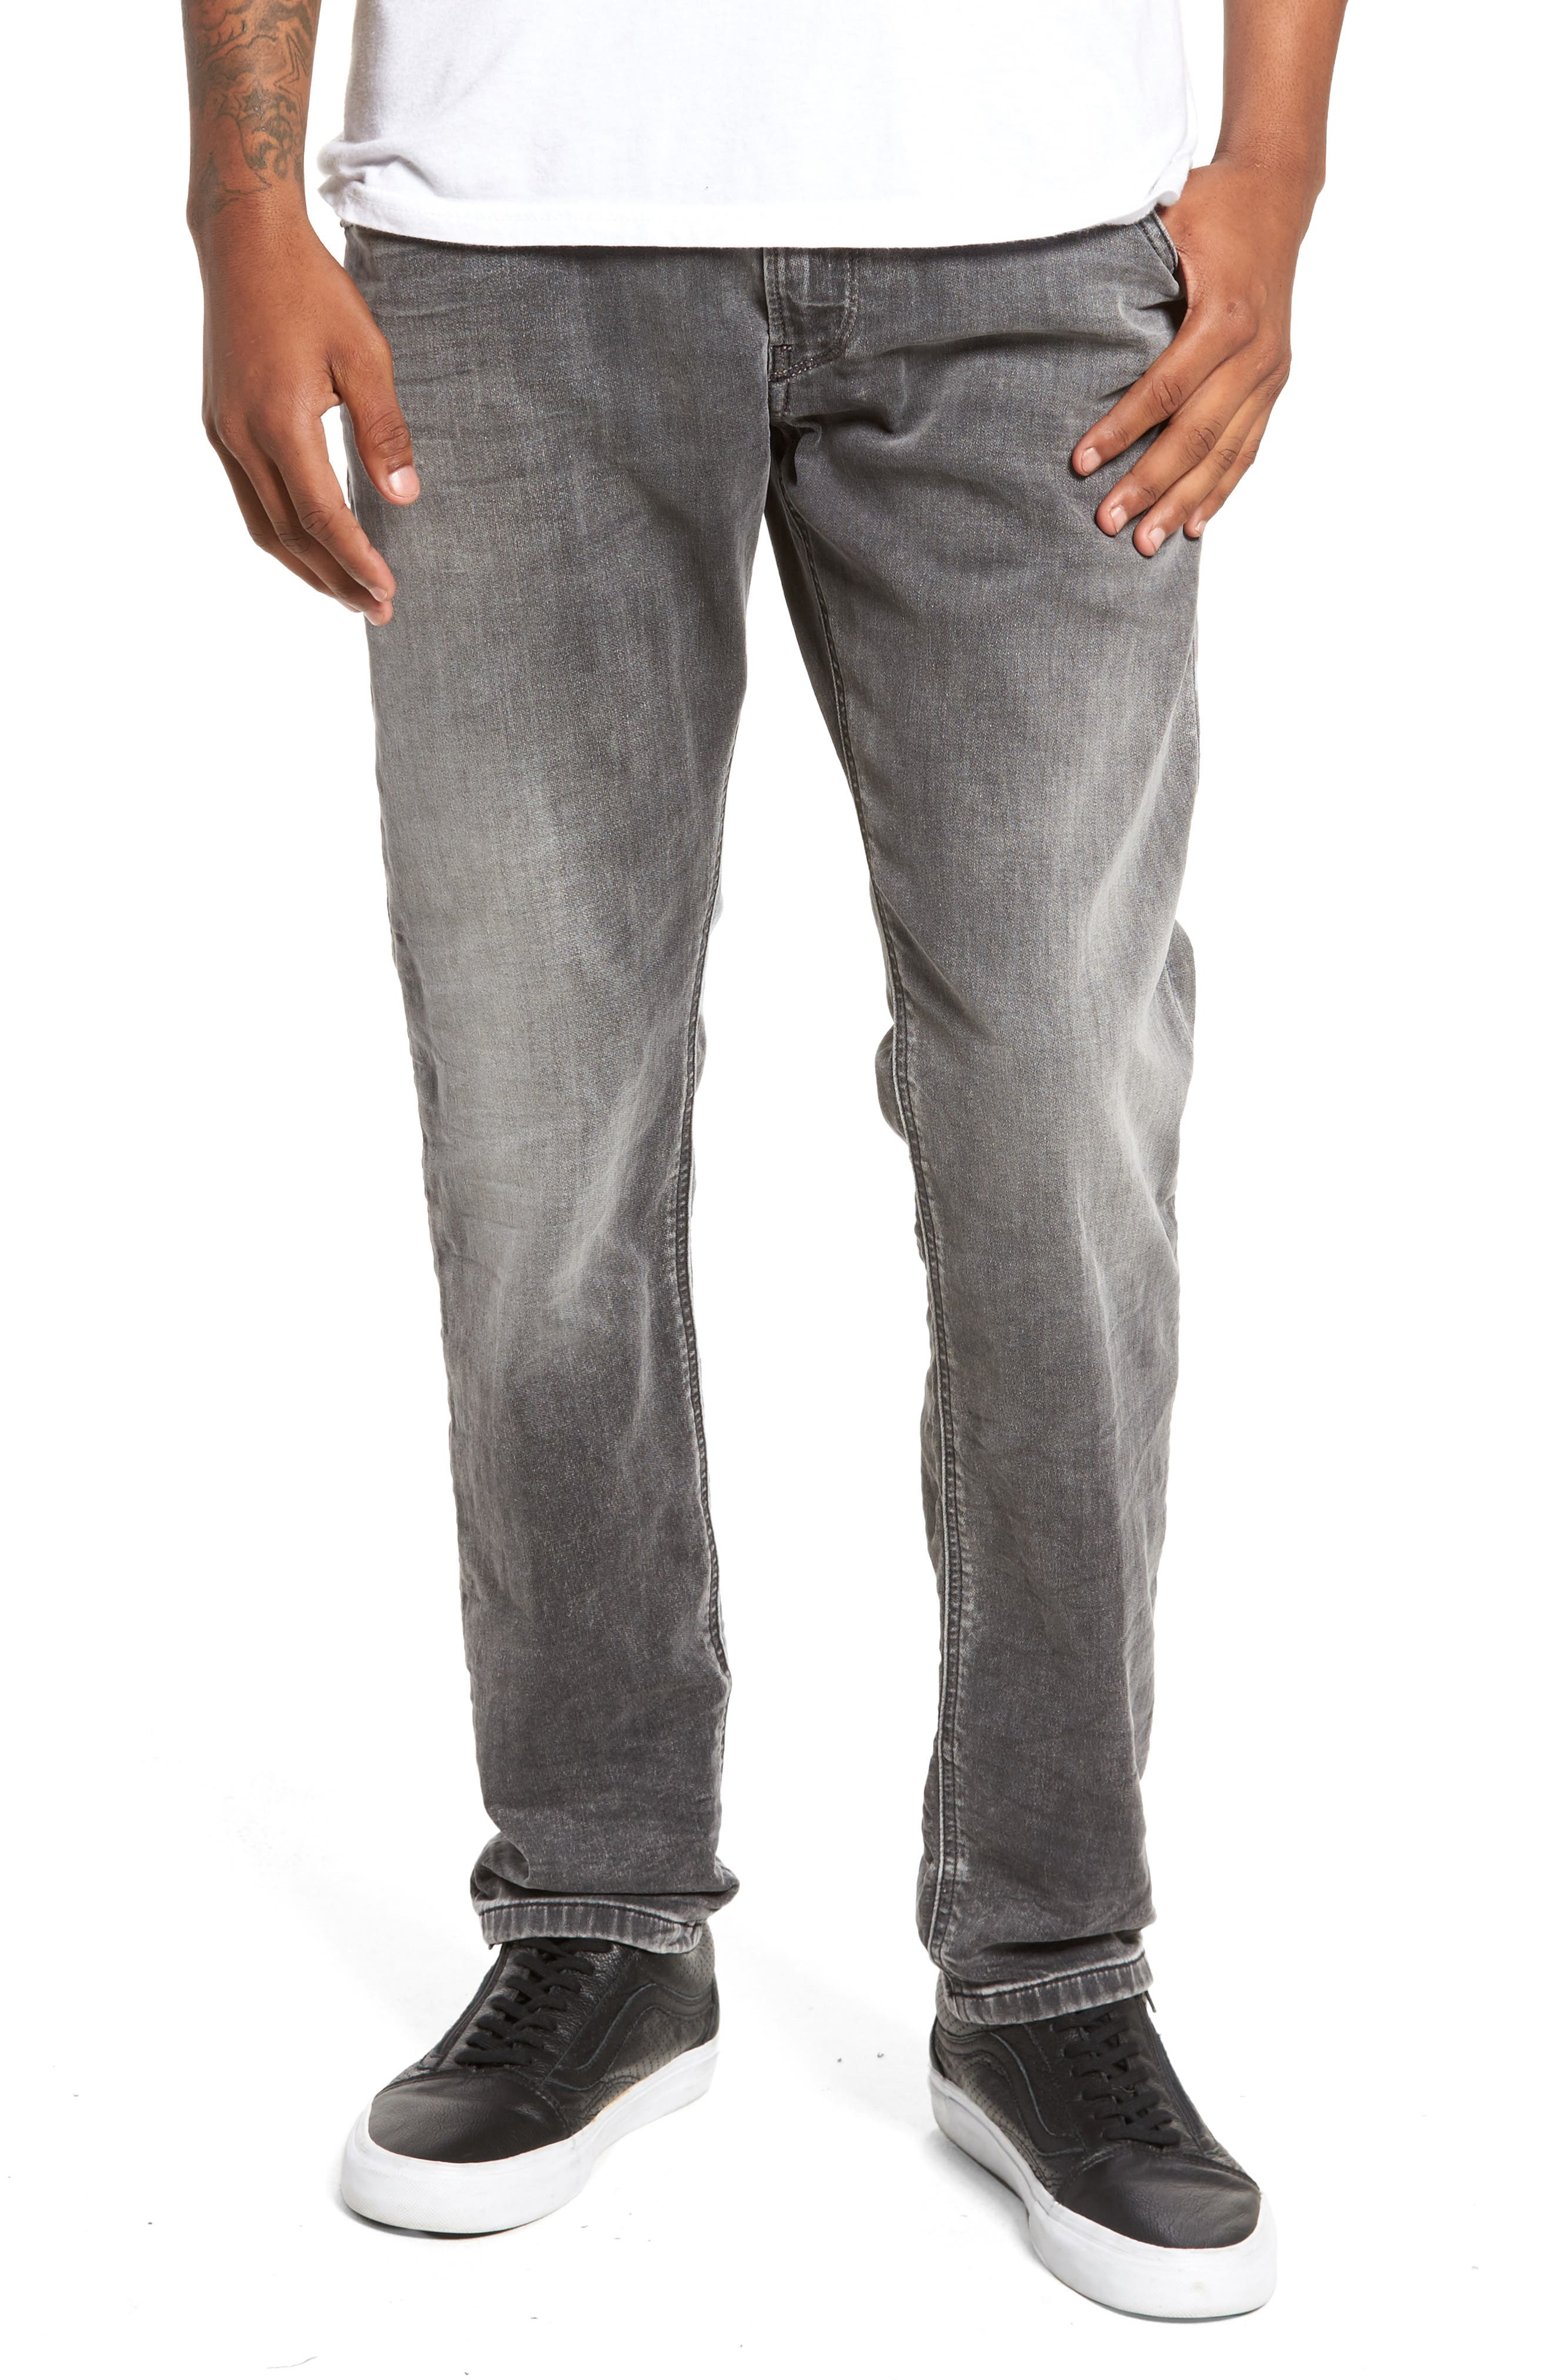 Krooley Slouchy Skinny Fit Jeans,                         Main,                         color, 0855B